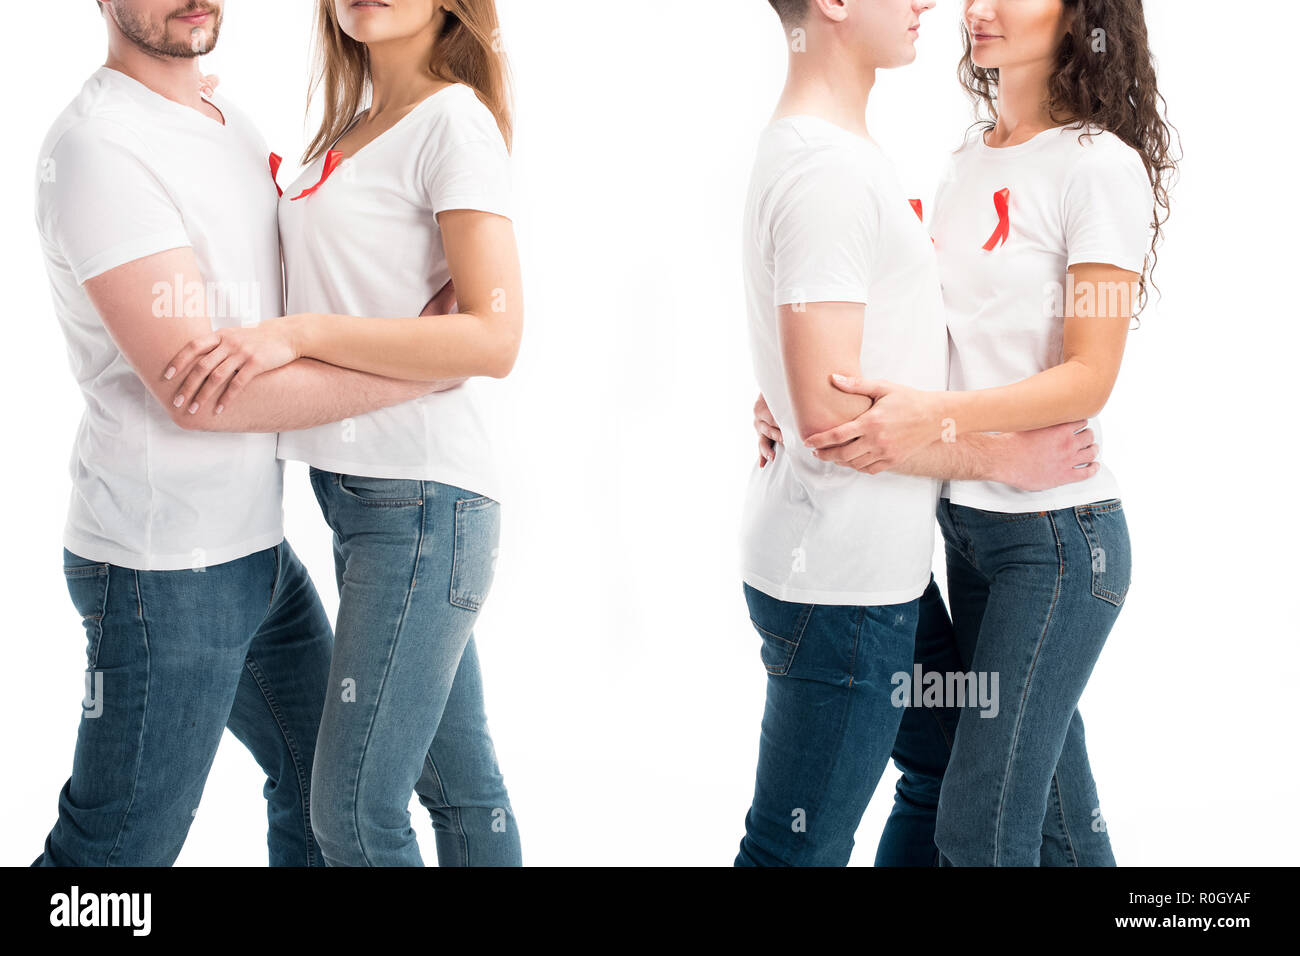 cropped image of two heterosexual couples with red ribbons hugging isolated on white, world aids day concept - Stock Image